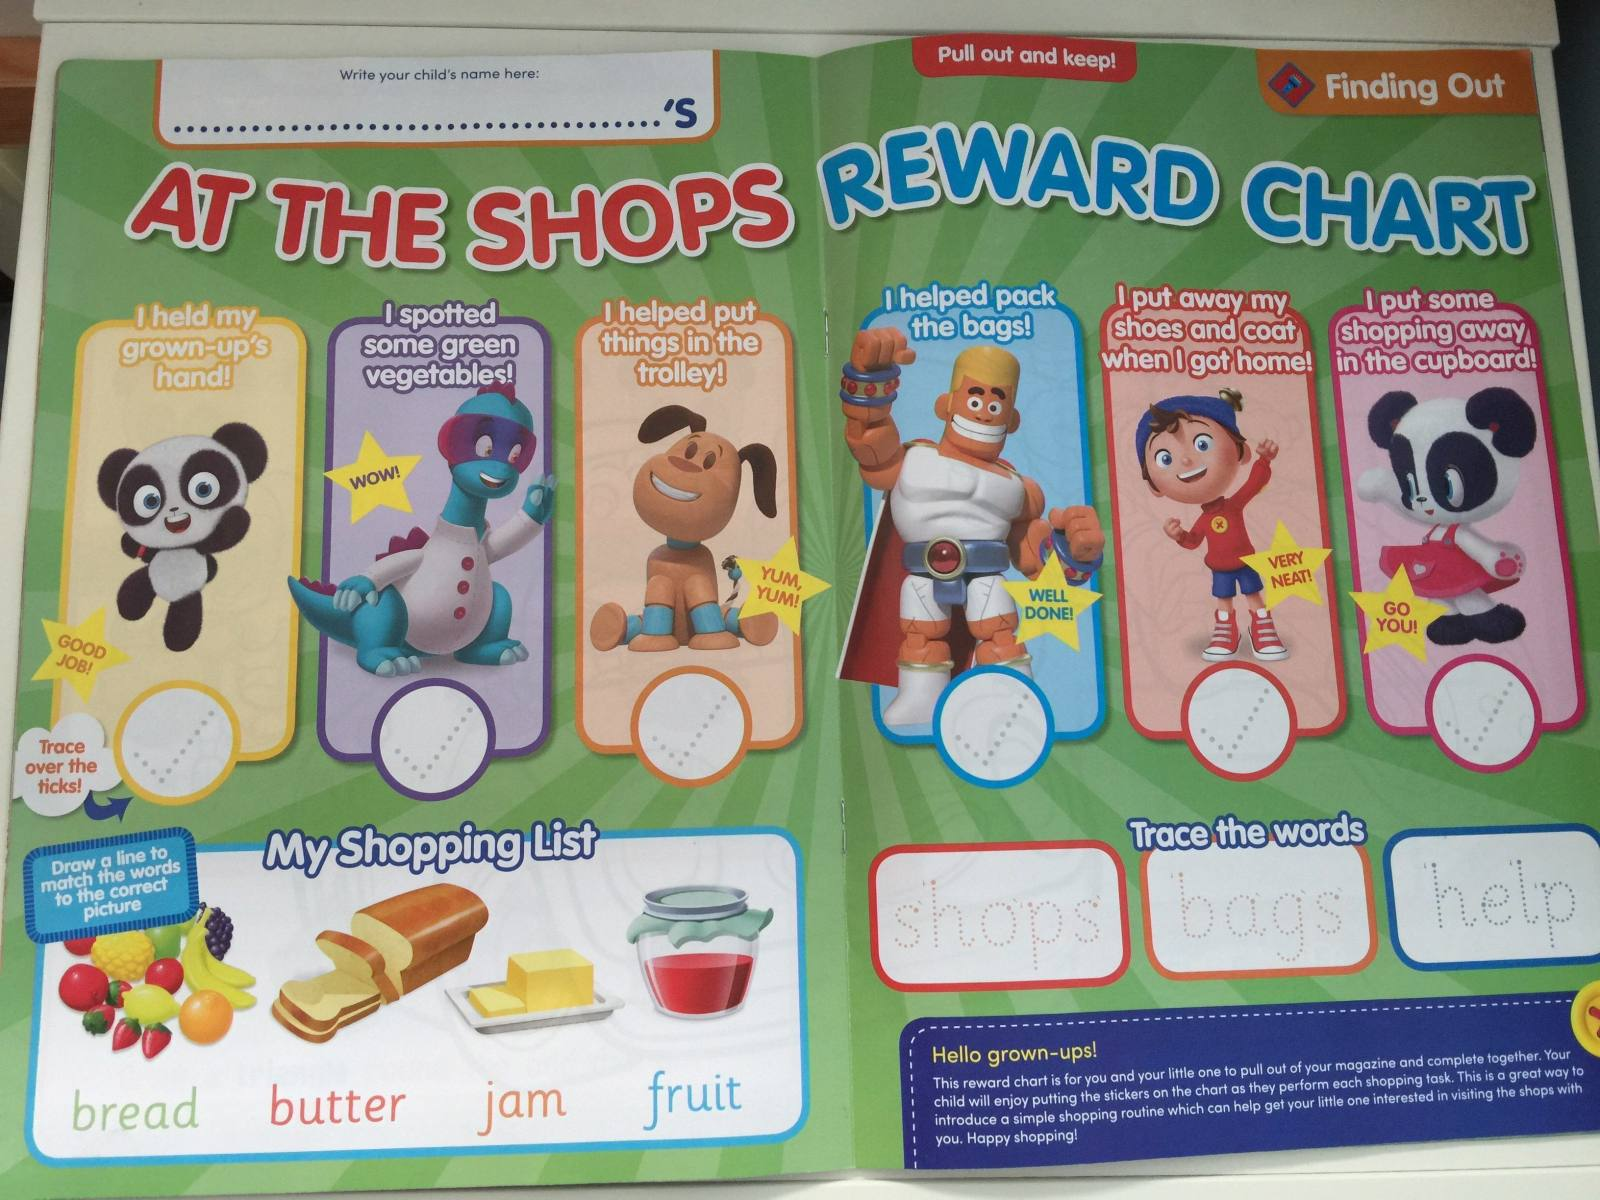 reward chart at the shops in Noddy magazine